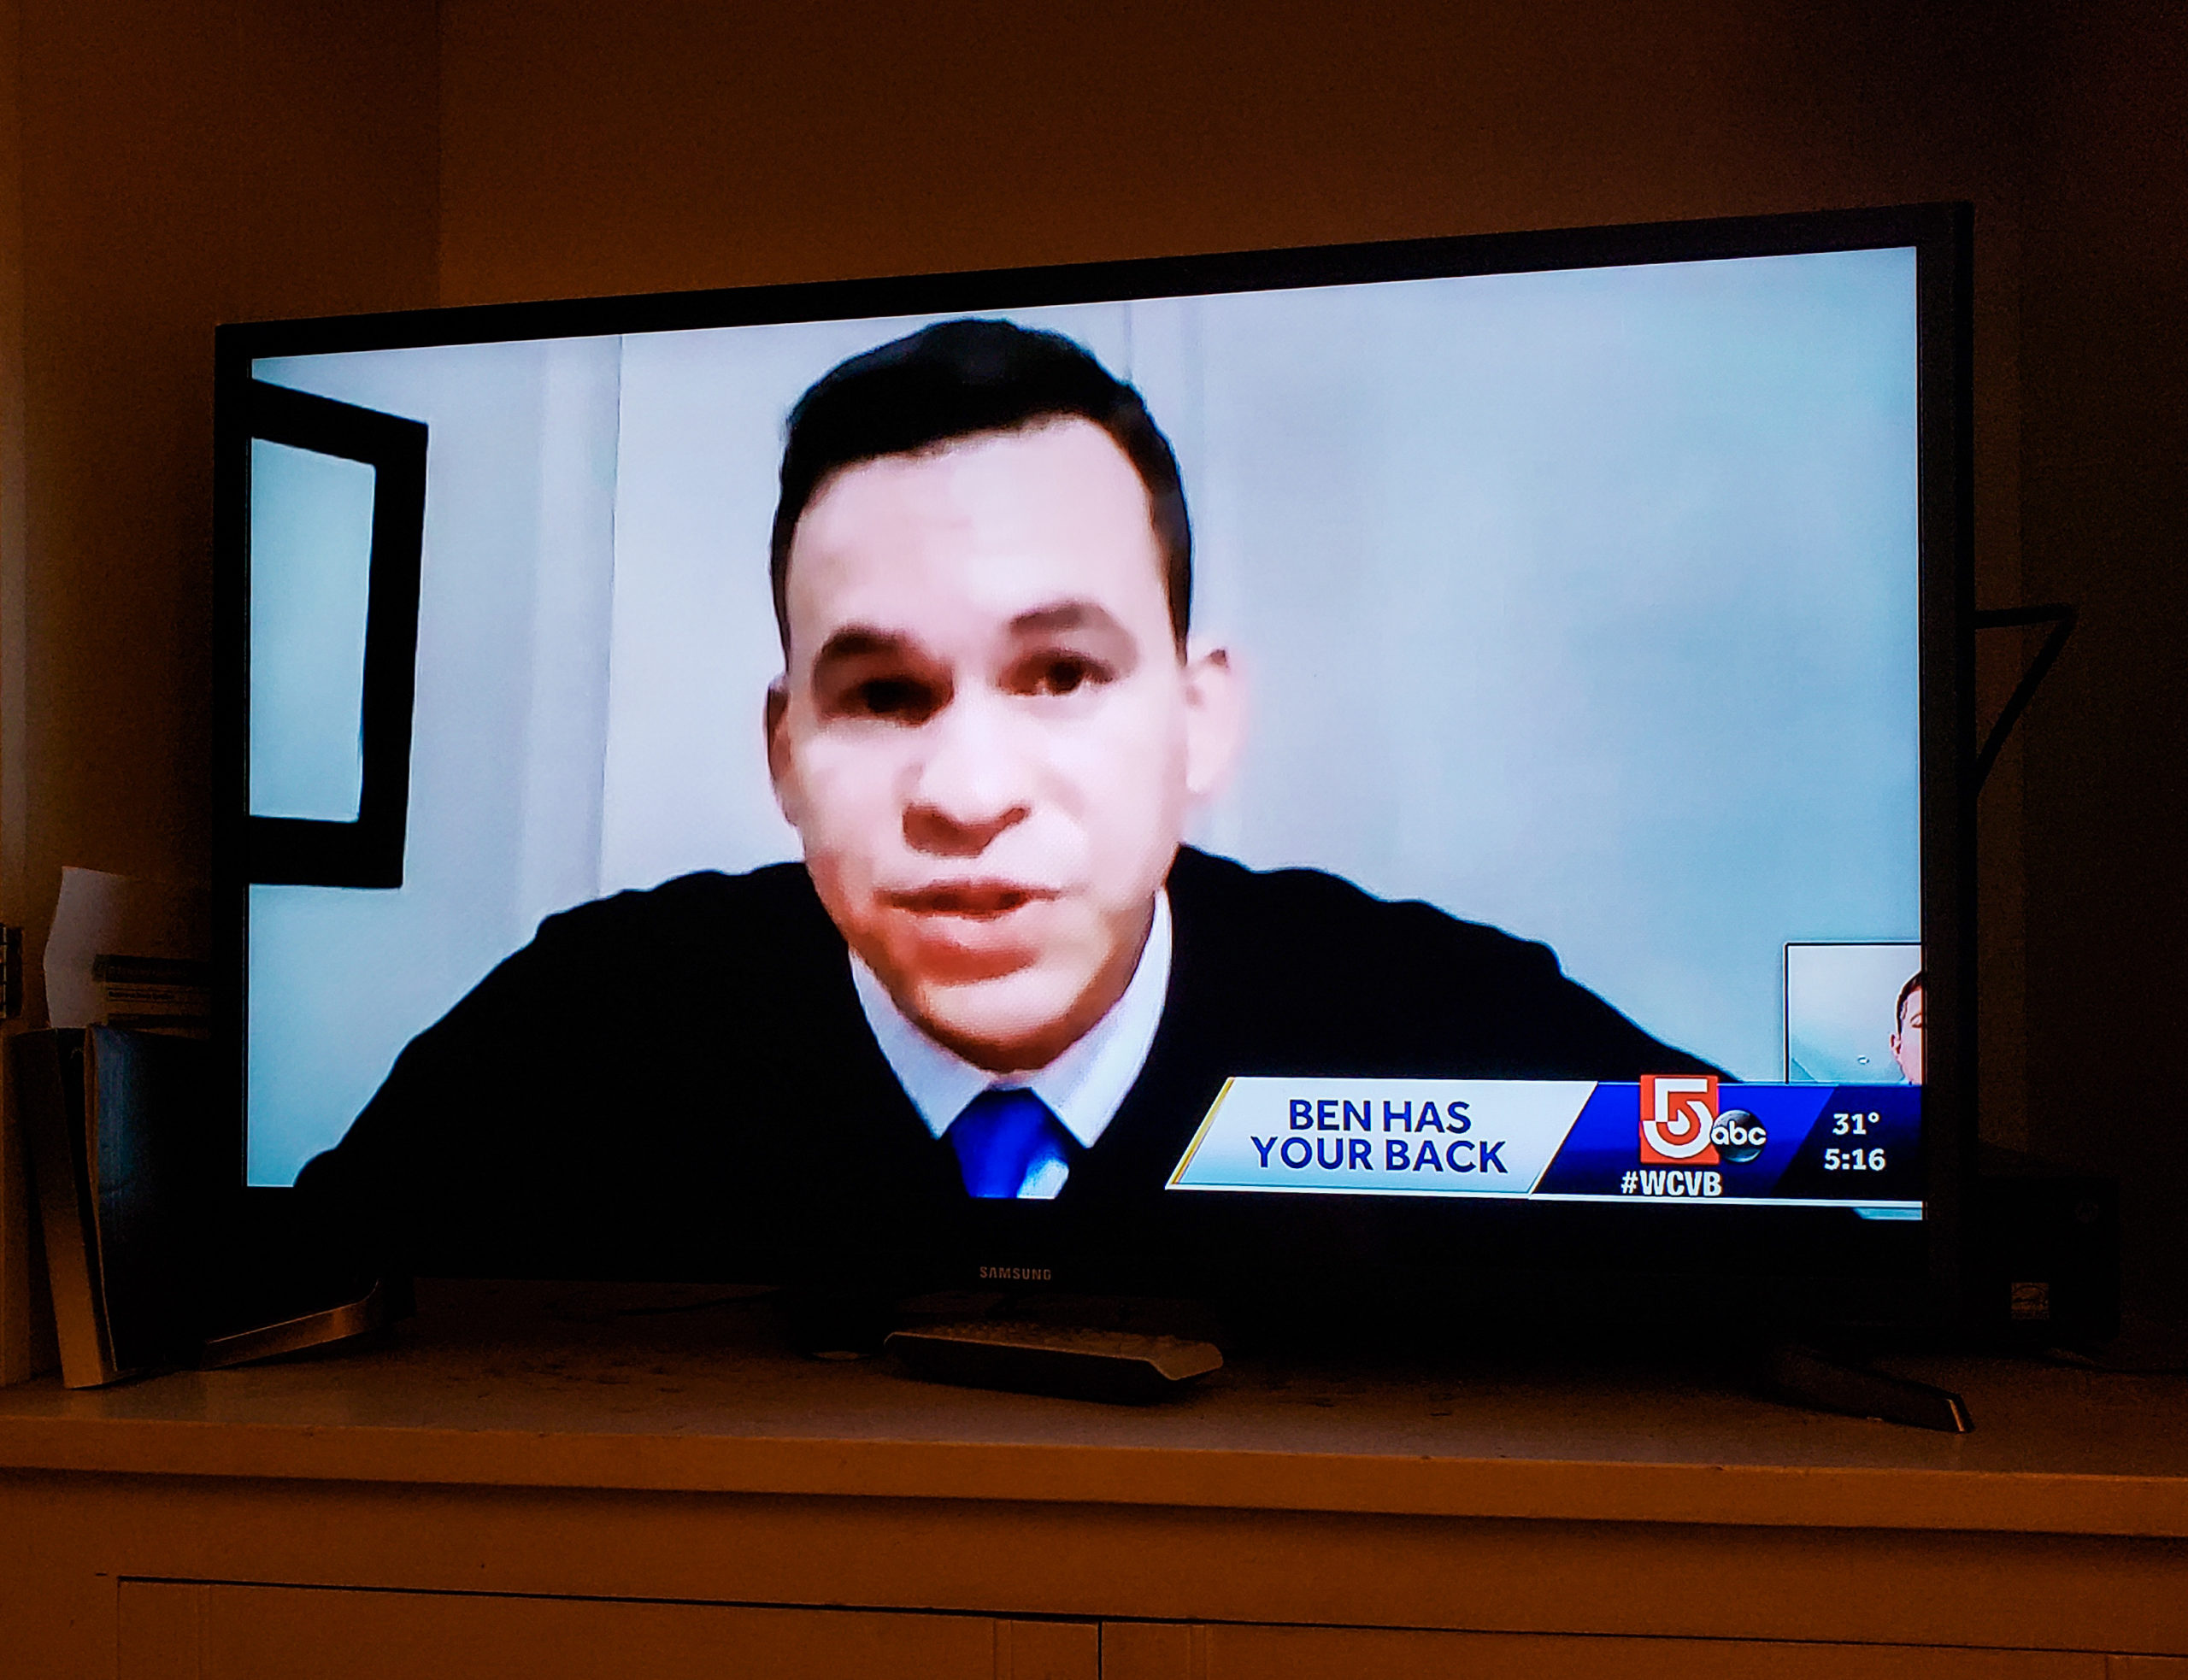 Rep. Sena being interviewed by Channel 5's Ben Simmoneau as part of resolving a constituent case in Shirley, MA